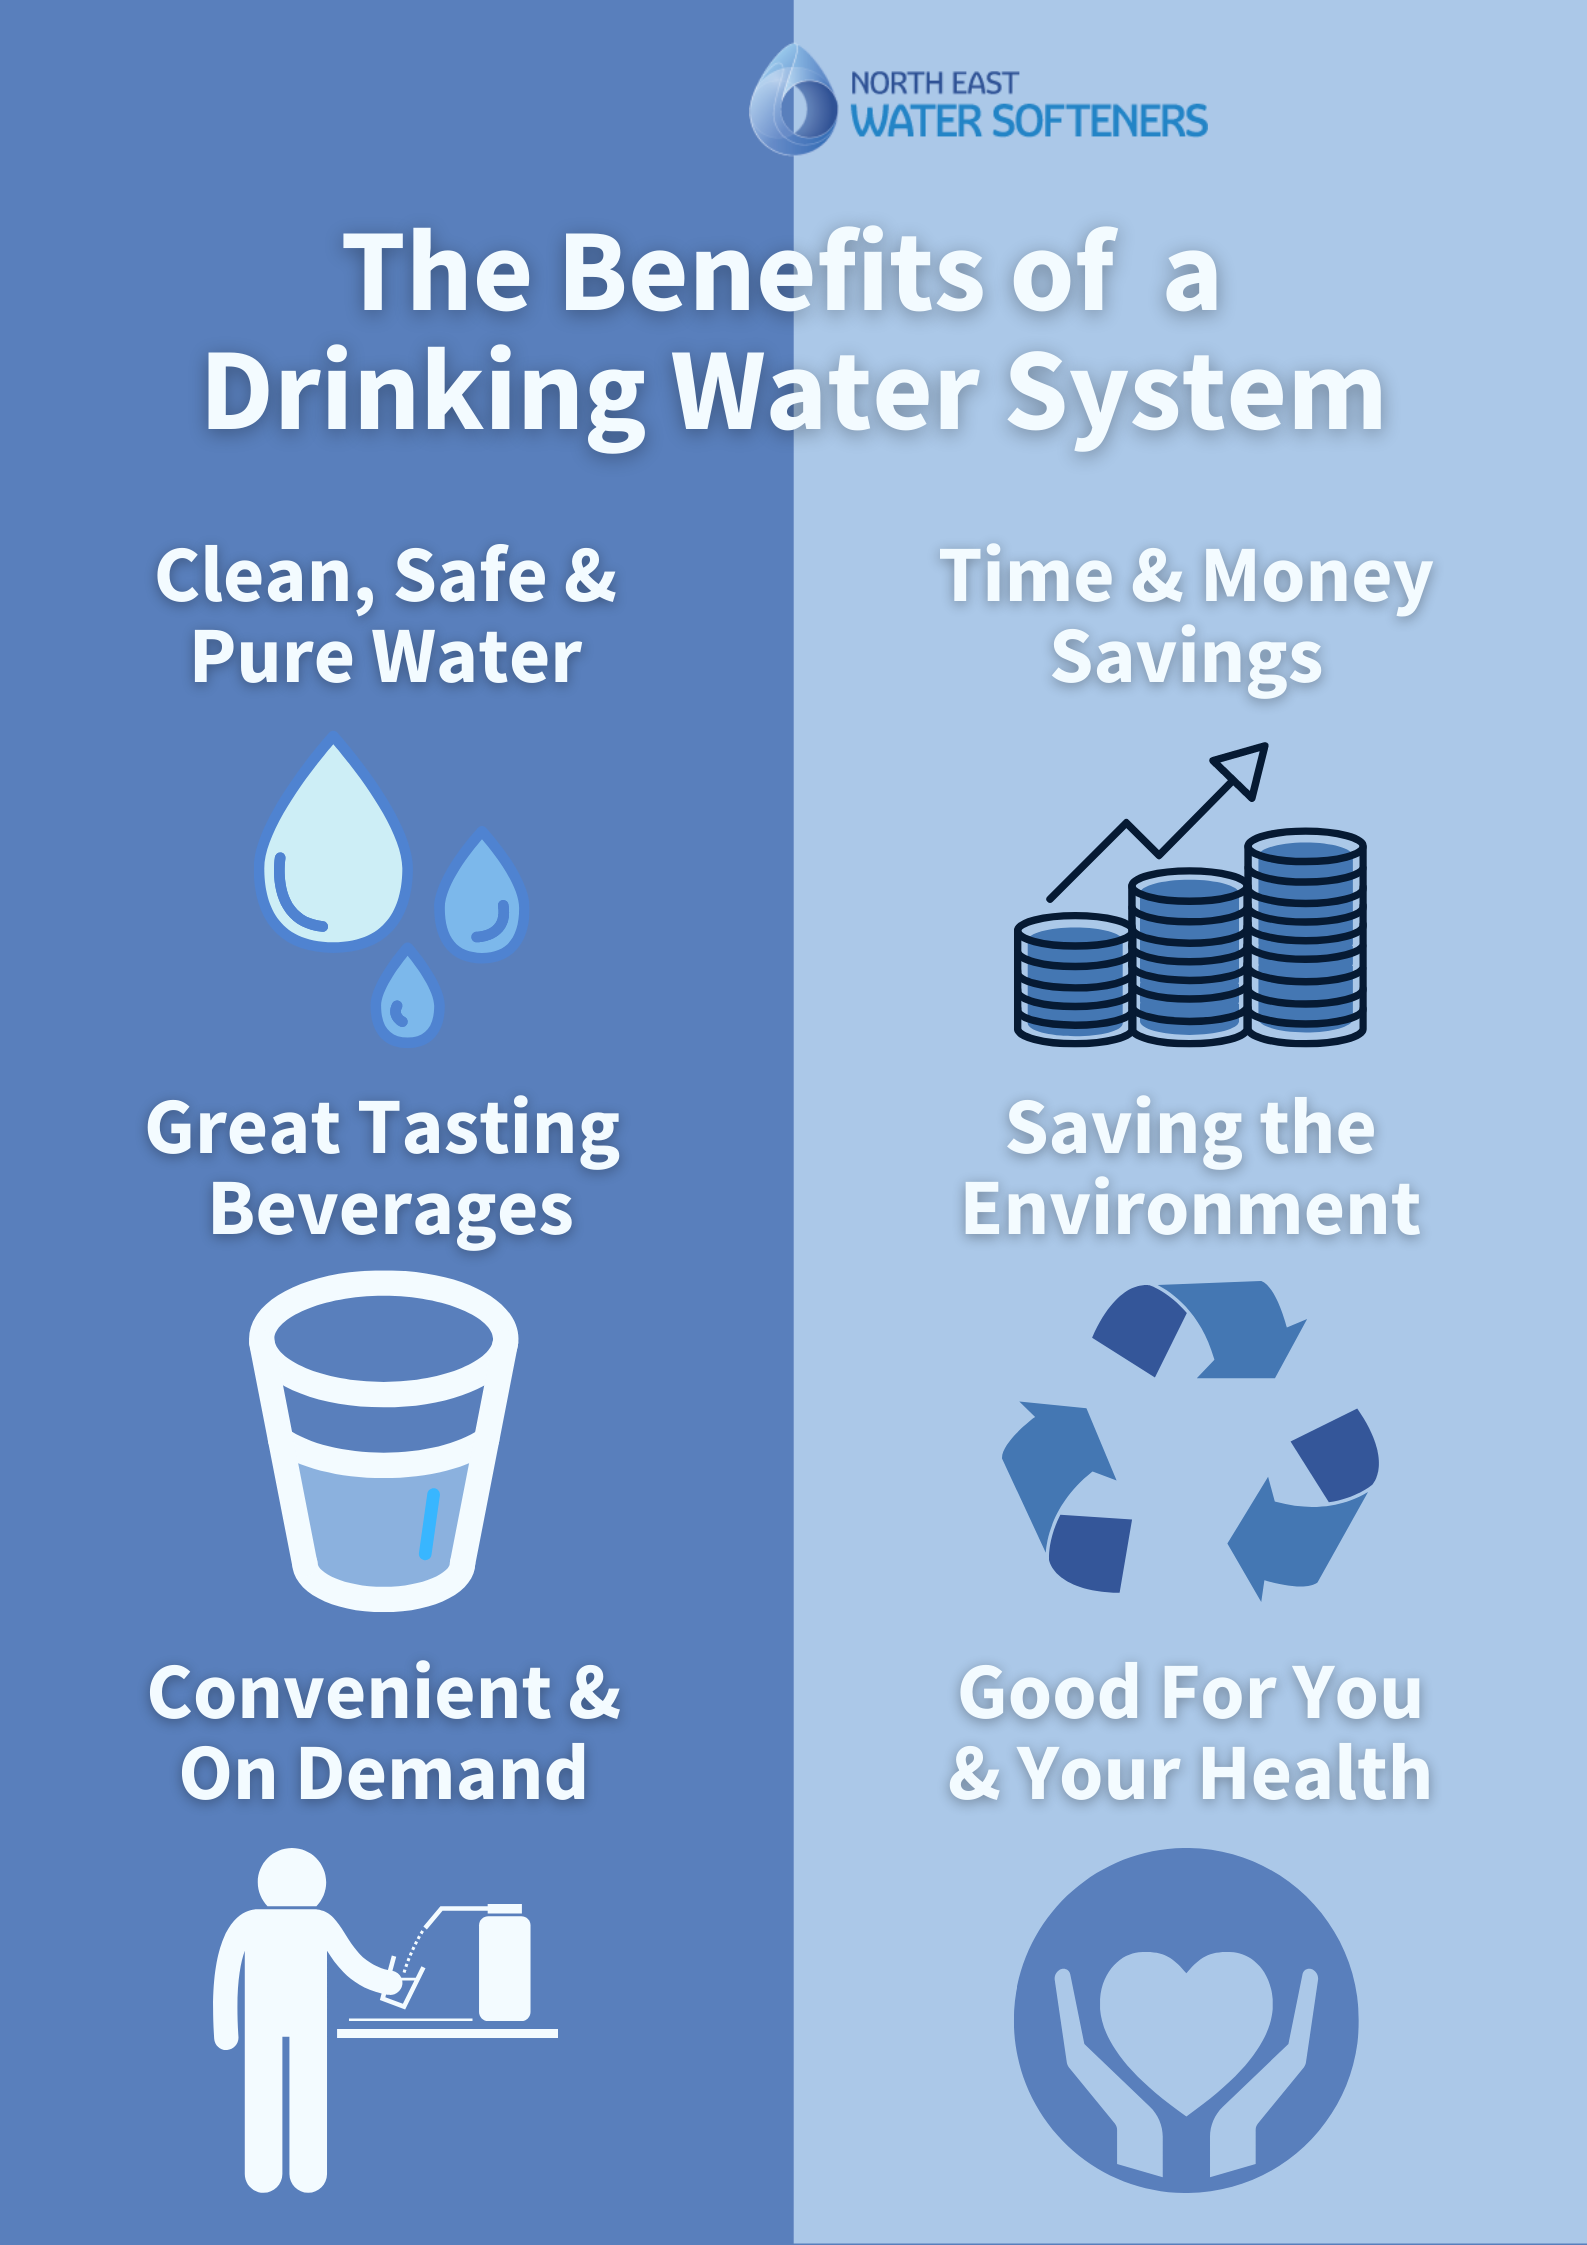 benefits of drinking water systems info graphic